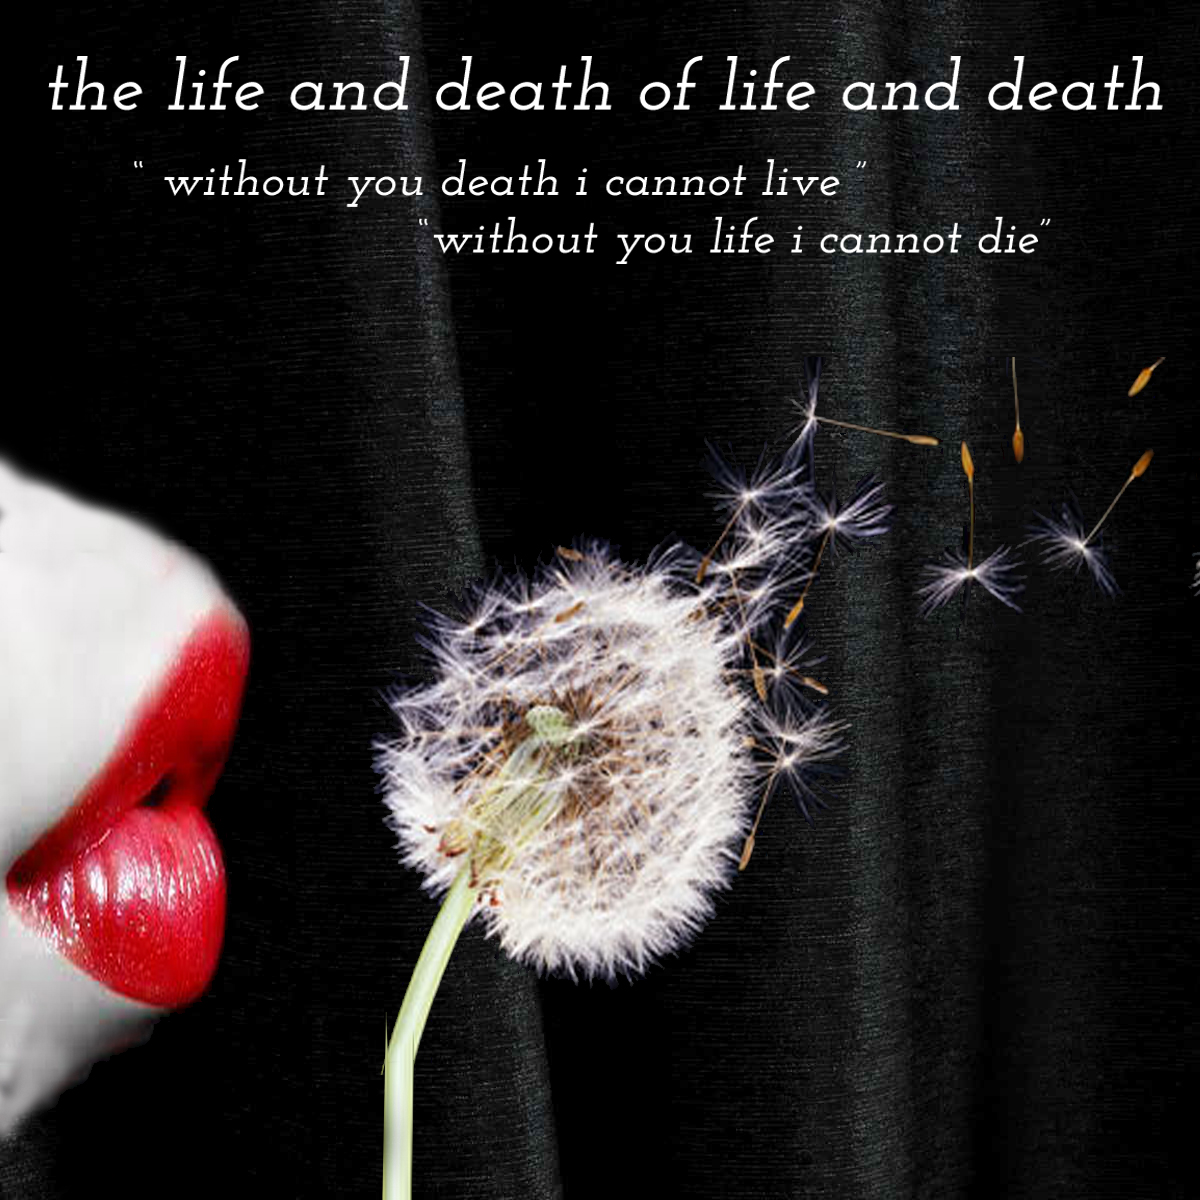 life and death at: